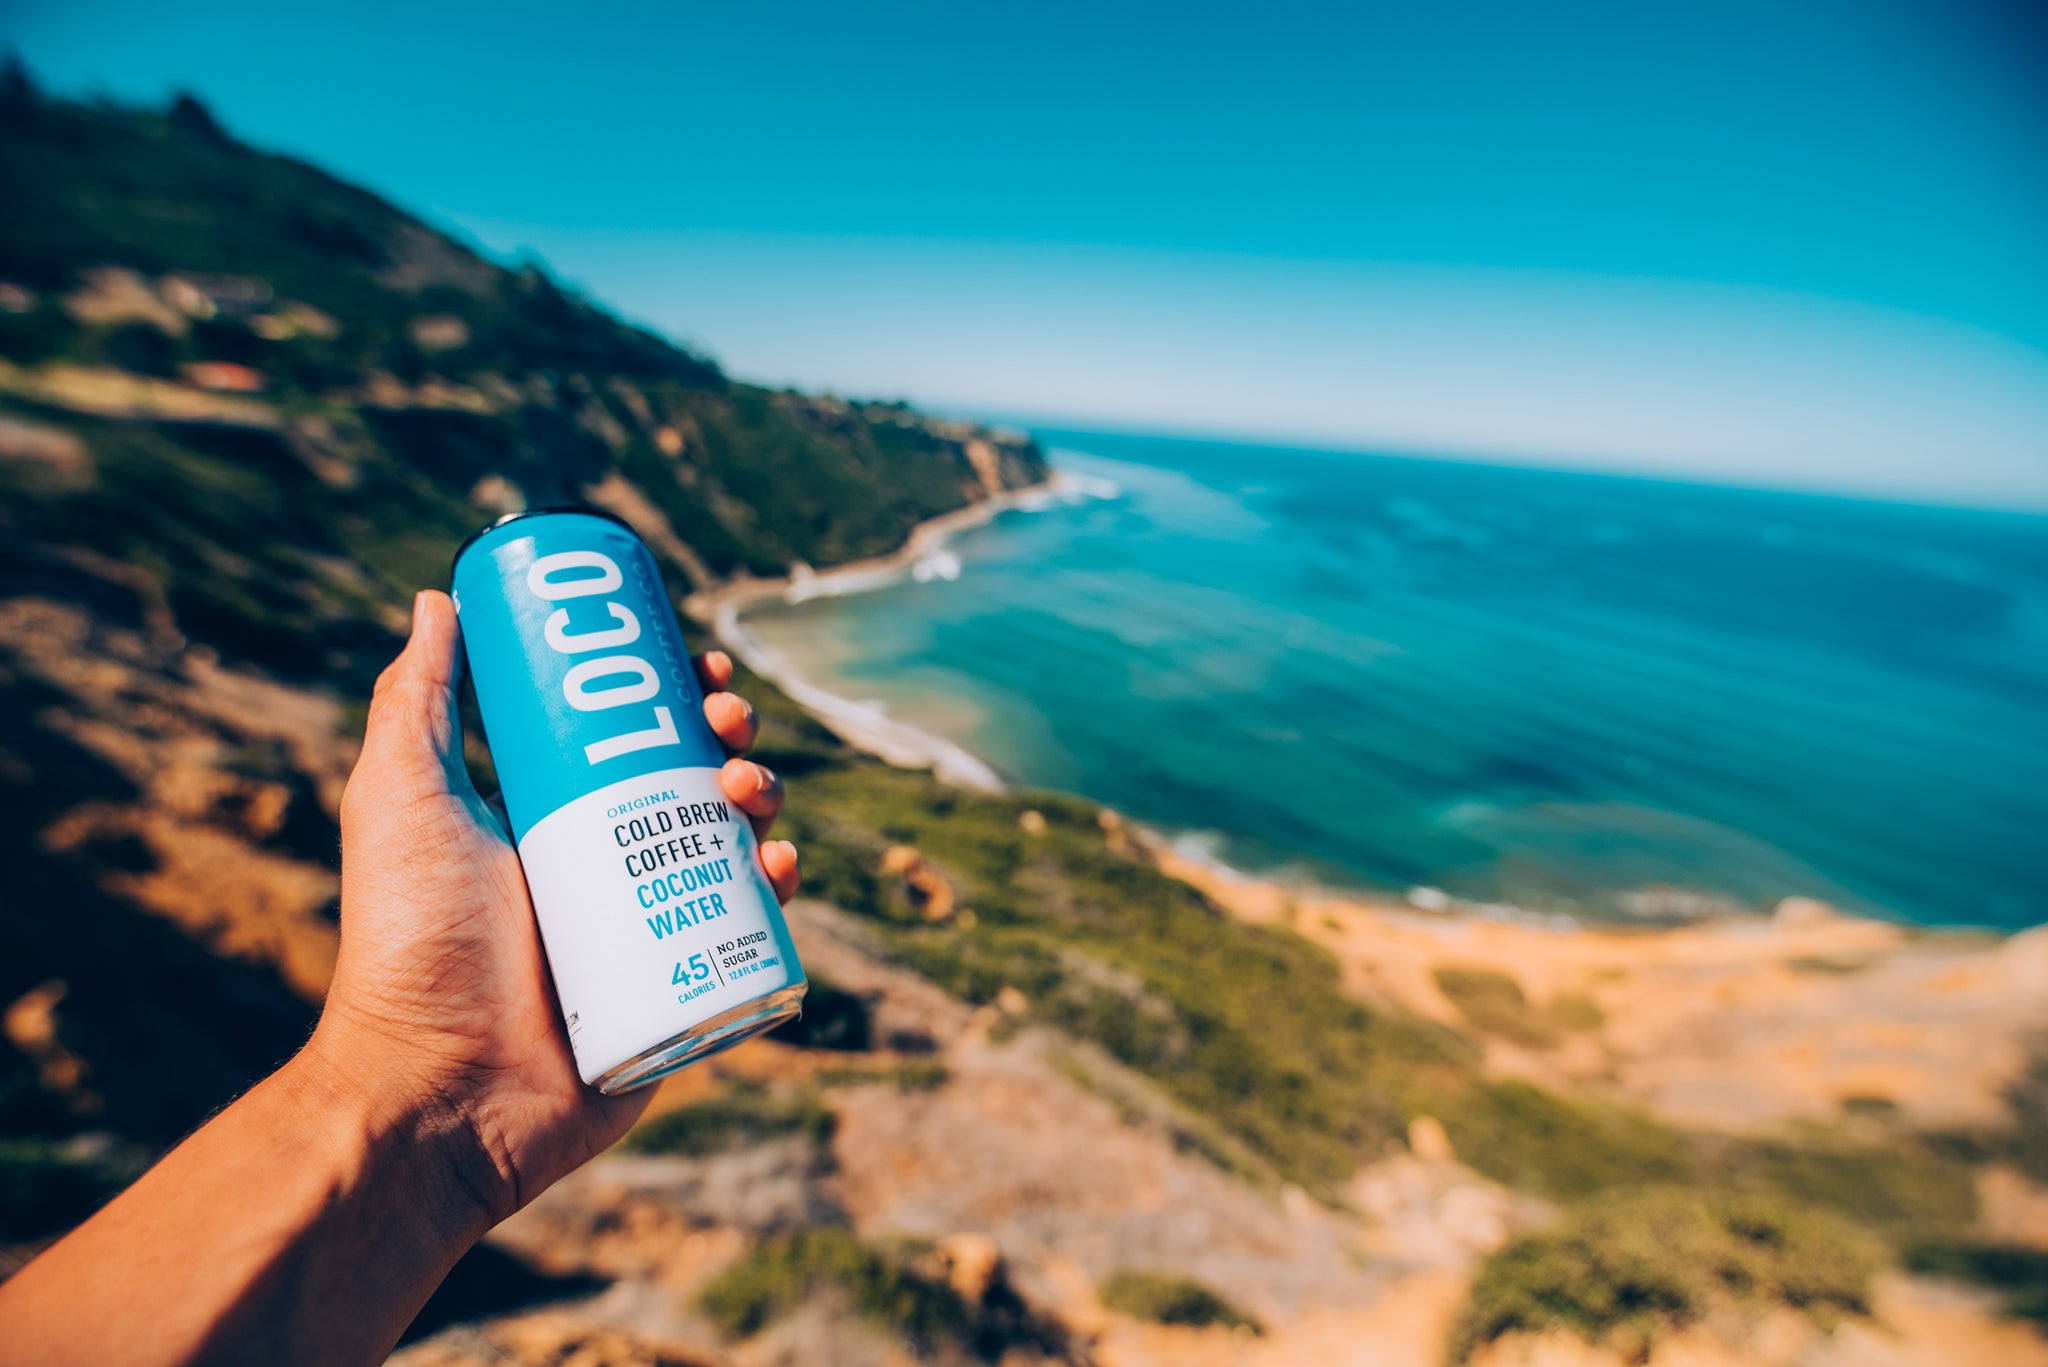 cold brew coffee with coconut water, hiking, adventure, california